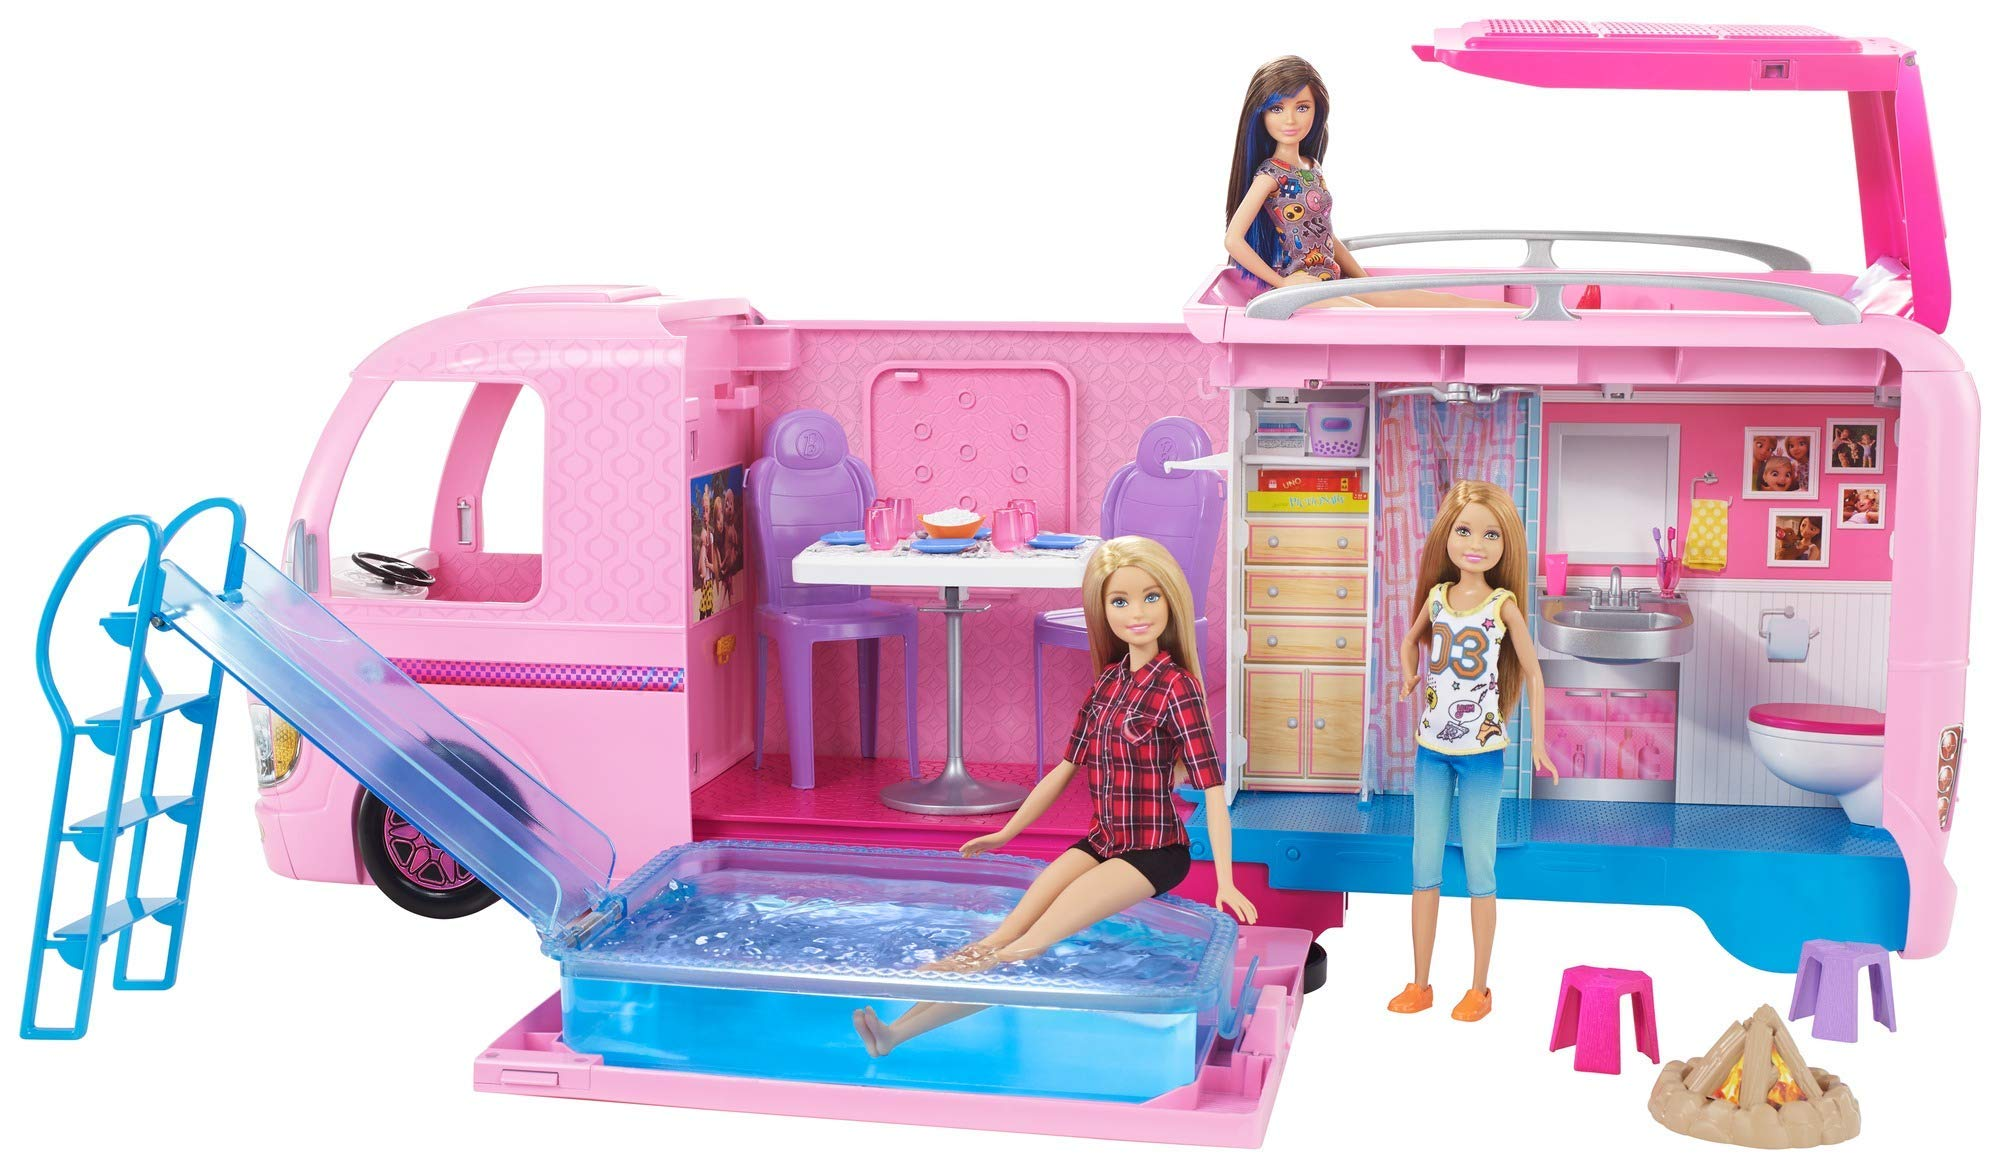 Buy Barbie Dream Camper Now!